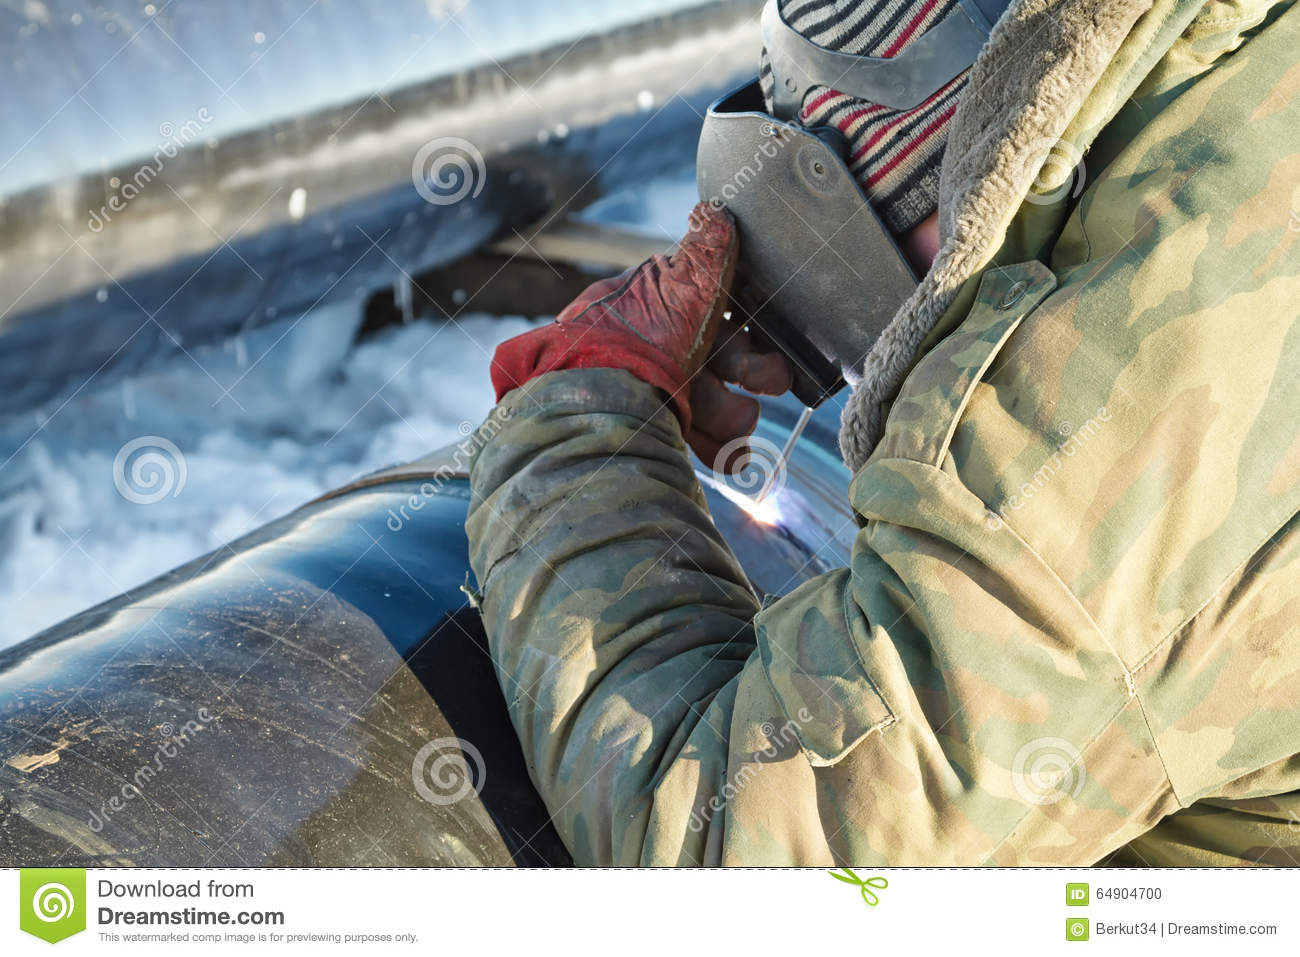 Welder performs welding pipeline in winter conditions